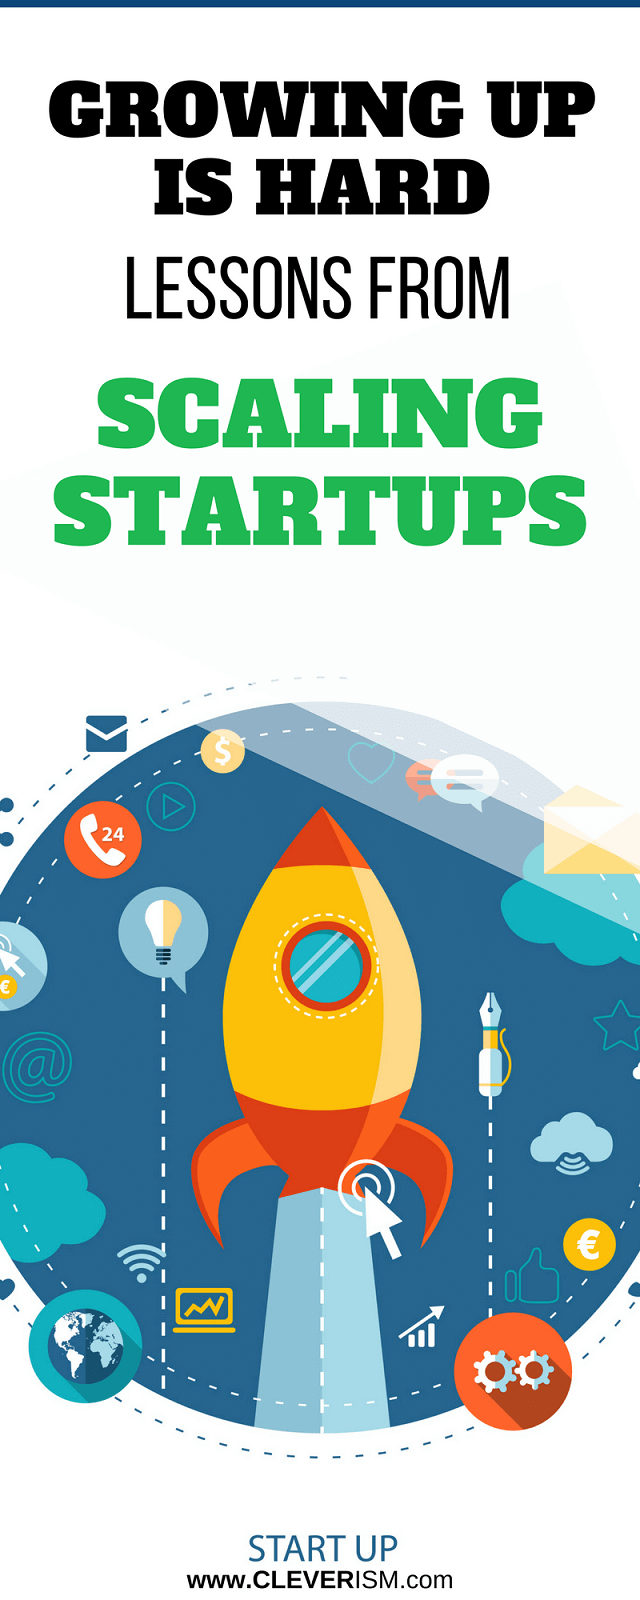 Growing Up Is Hard: Lessons from Scaling Startups